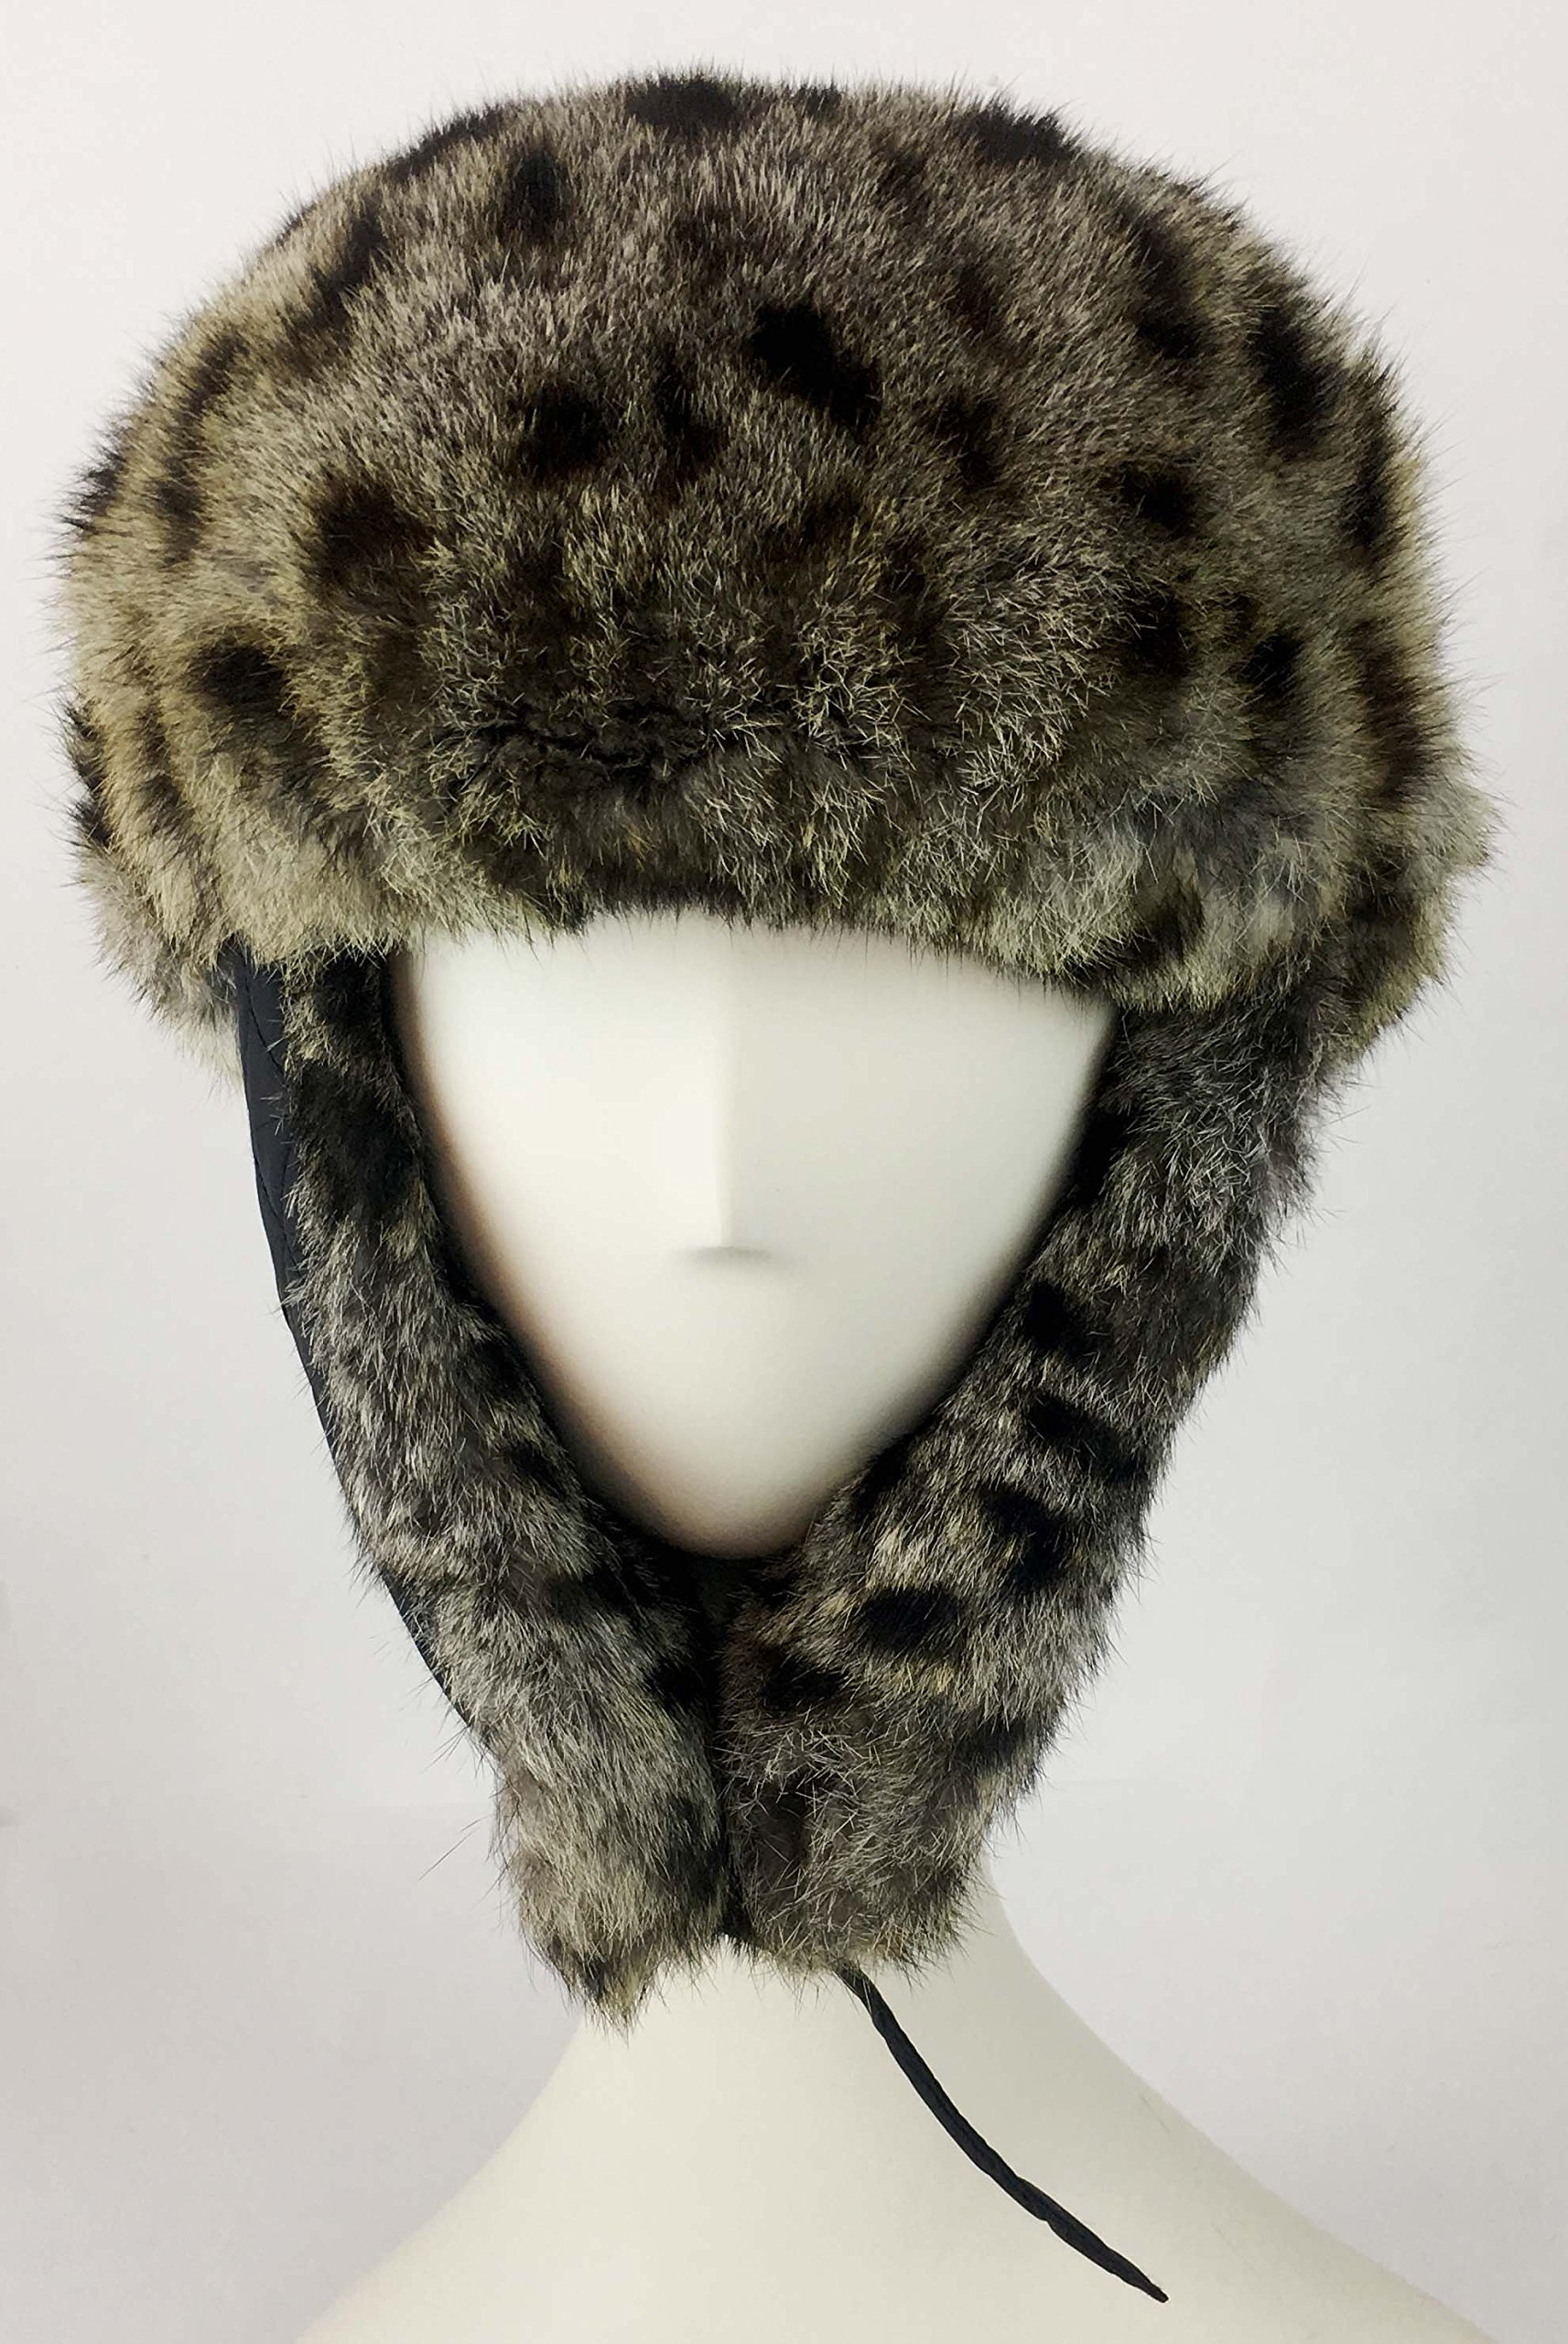 surell Trapper Aviator Hat with Rabbit Fur Trim - Warm Bomber Trooper Hat - Perfect Winter Luxury Gift (Leopard) by surell (Image #2)